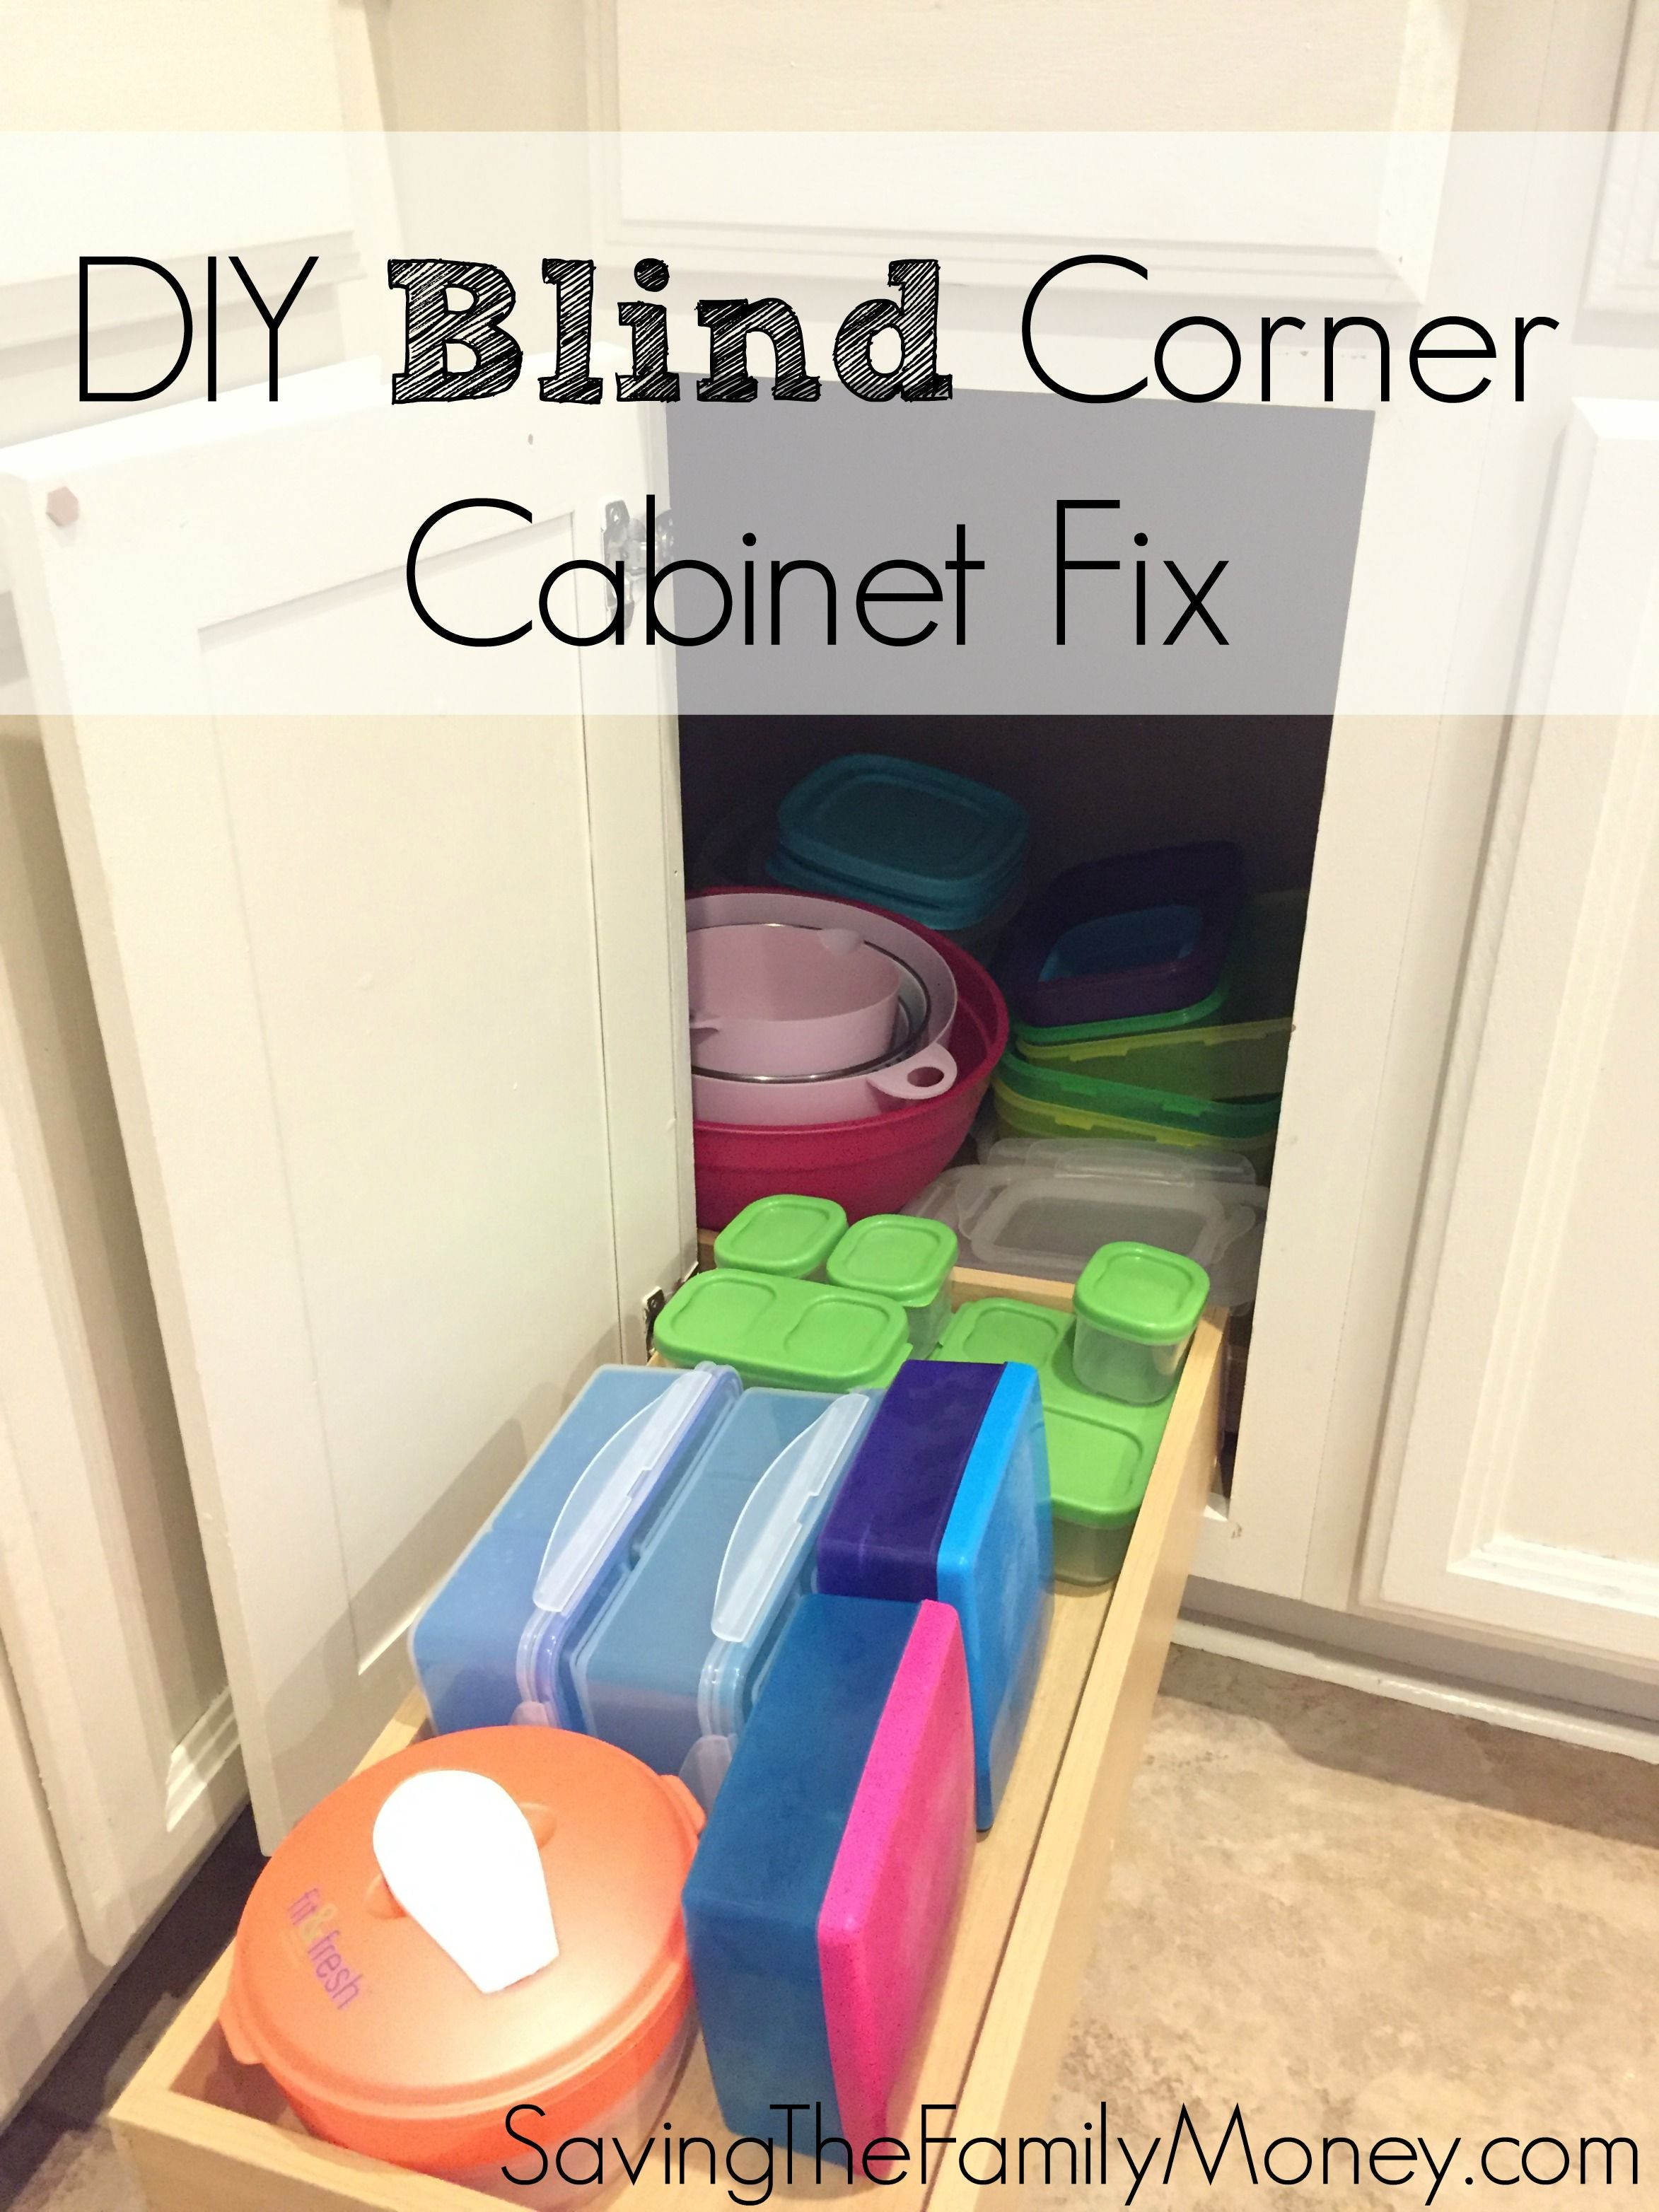 Kitchen corner cabinet wasted space - Diy Blind Corner Cabinet Fix Kitchen